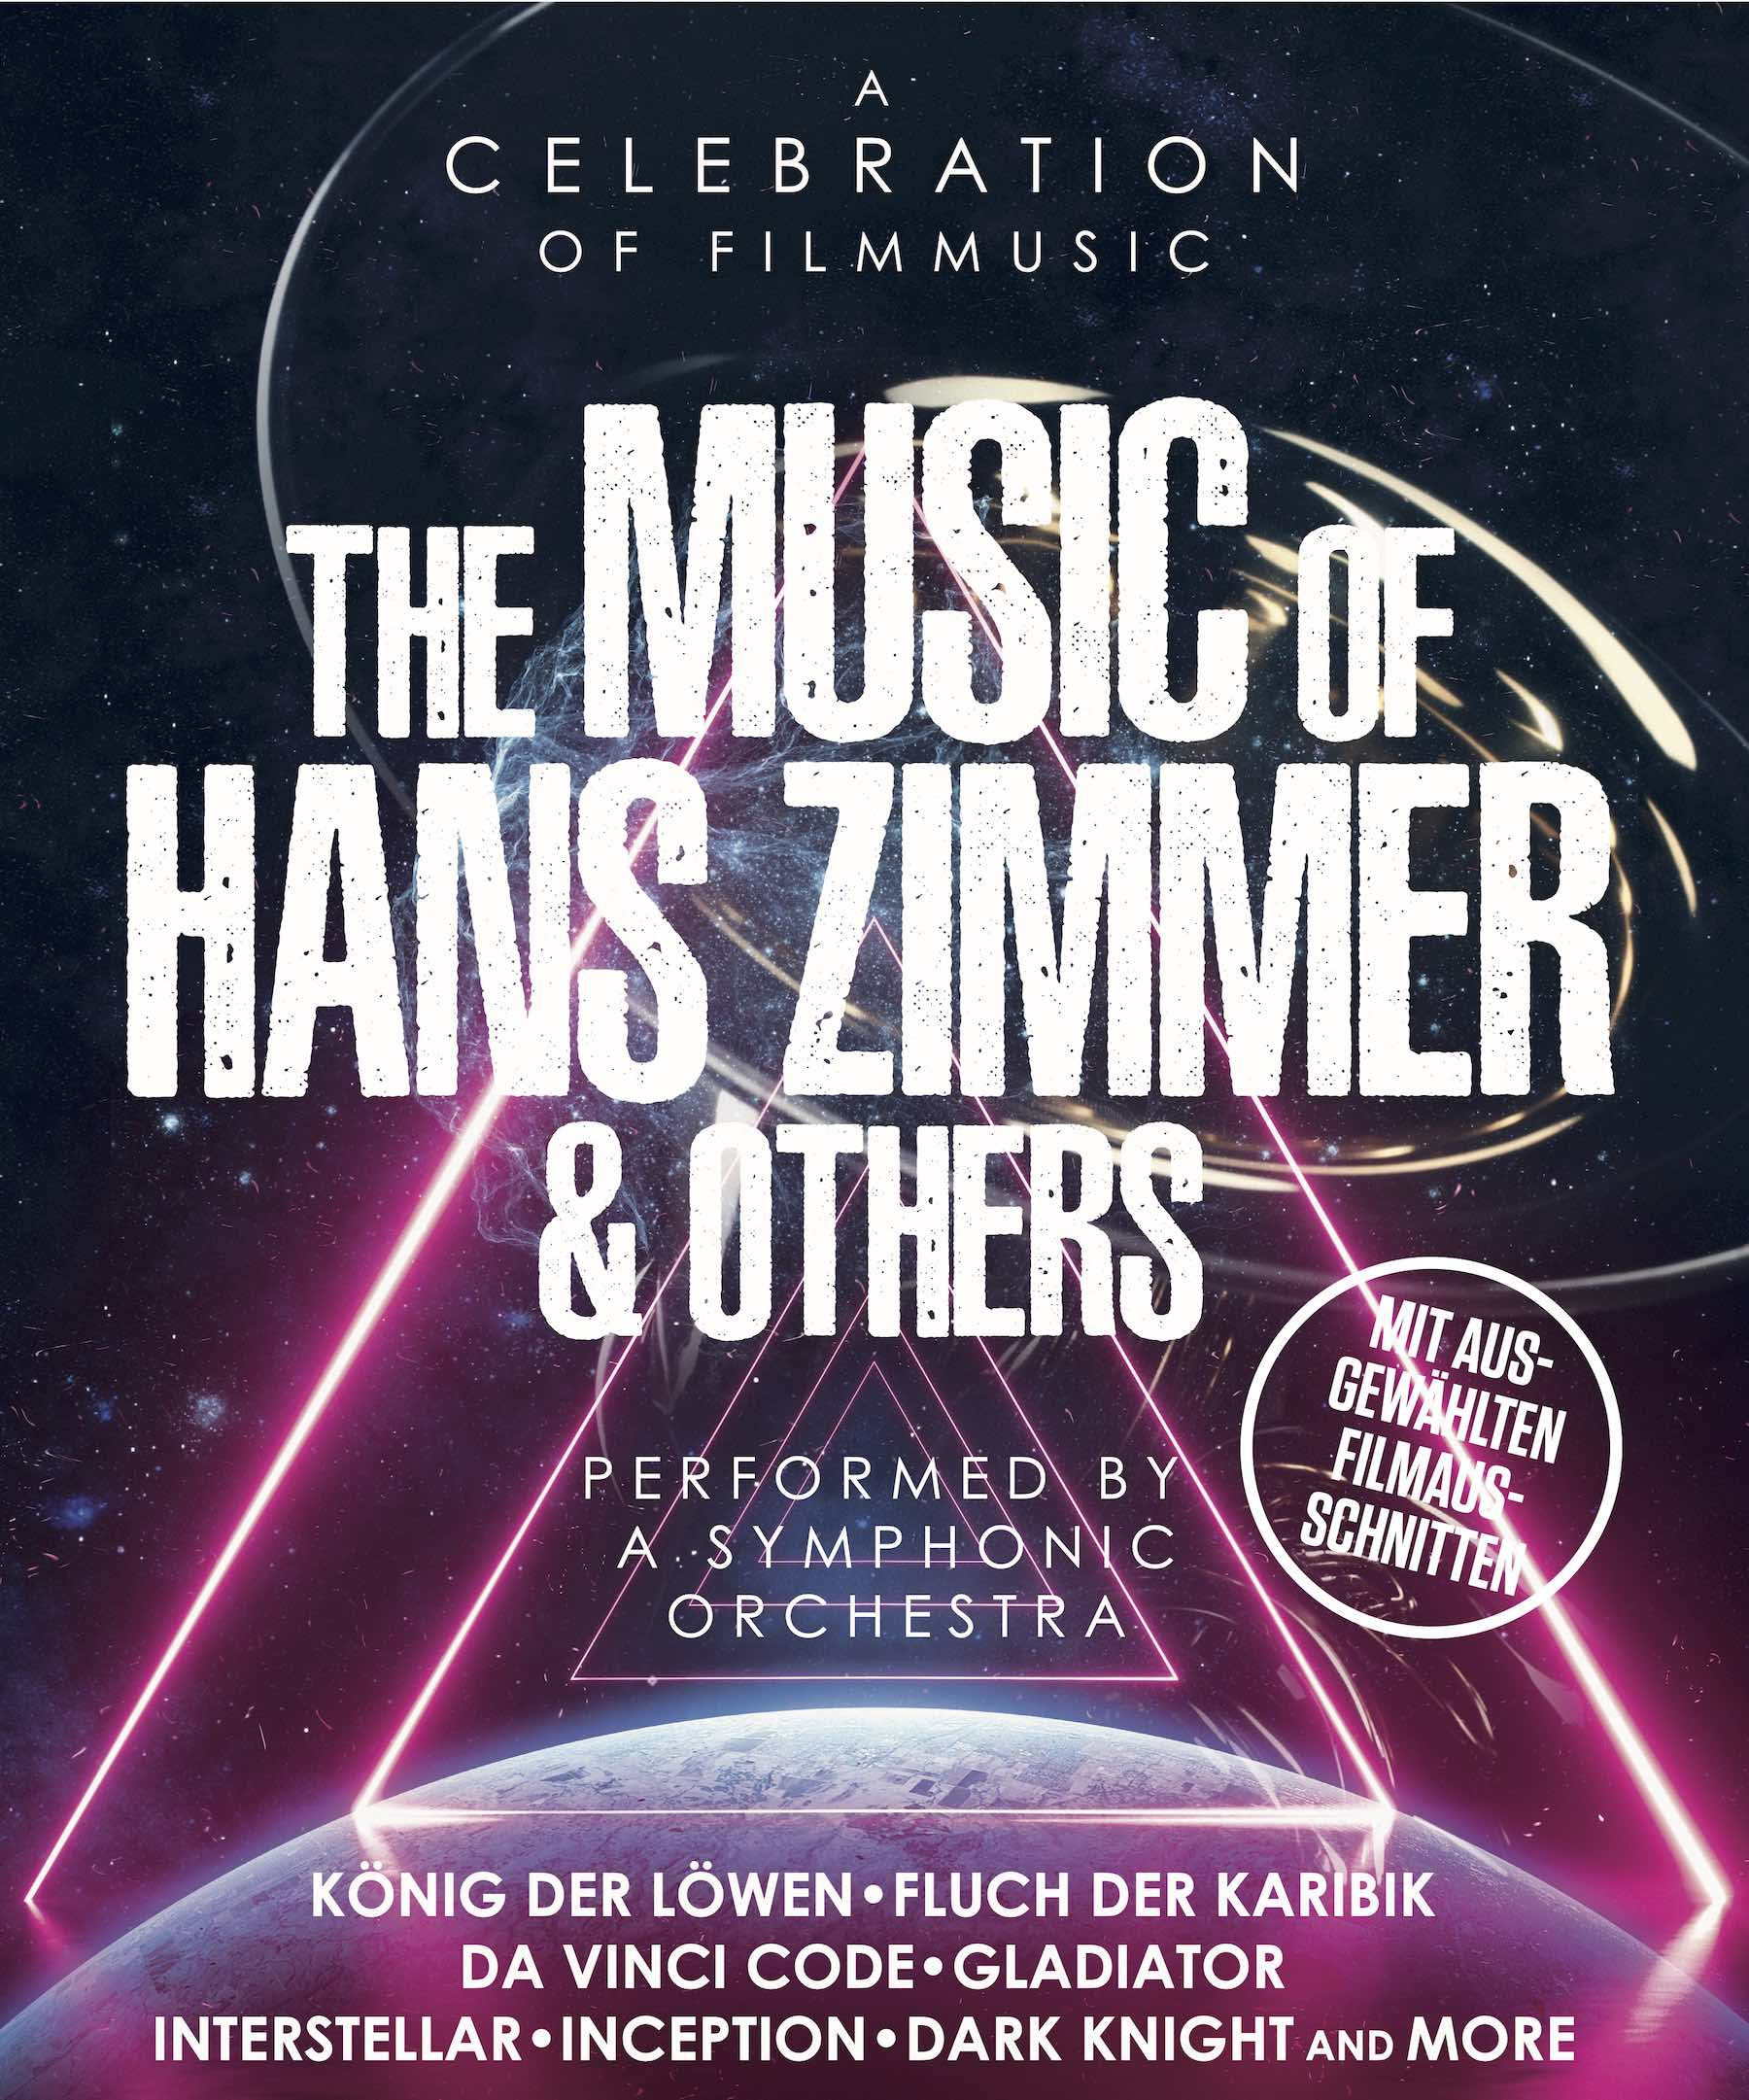 THE MUSIC OF HANS ZIMMER  OTHERS  Pressefoto   01